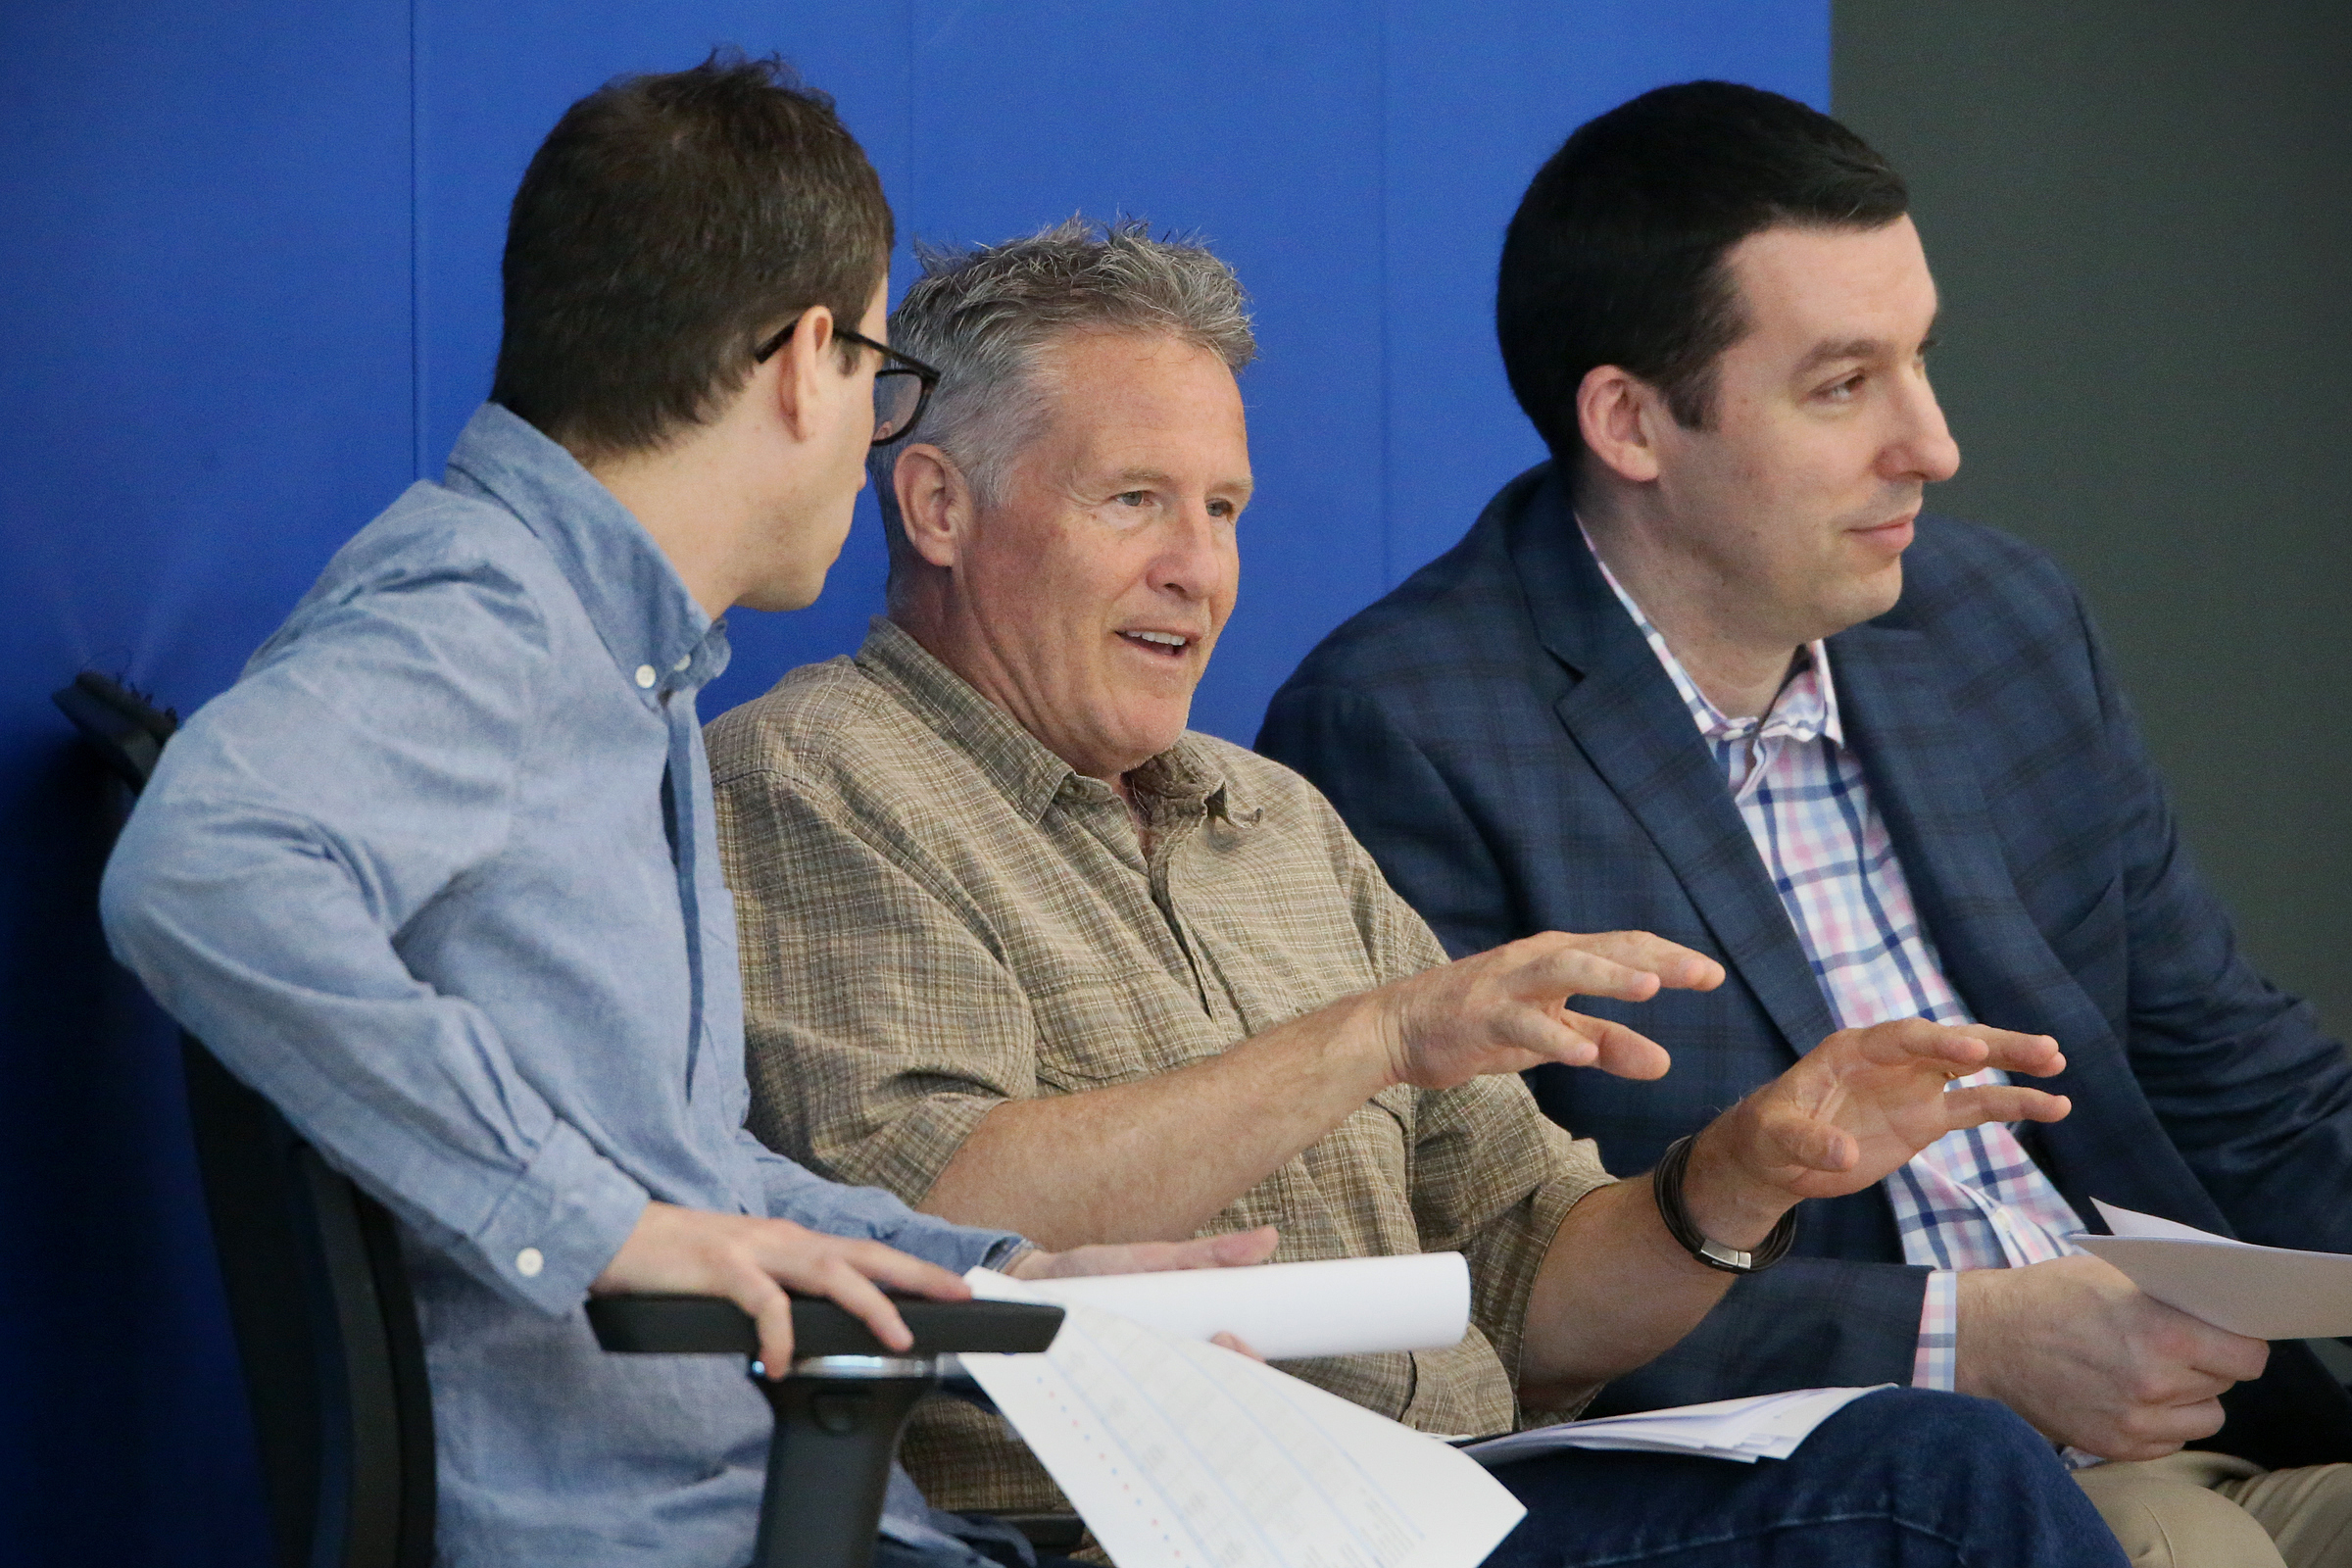 From left, Ned Cohen, Brett Brown and Alex Rucker watching prospects during a pre-draft workout in June.